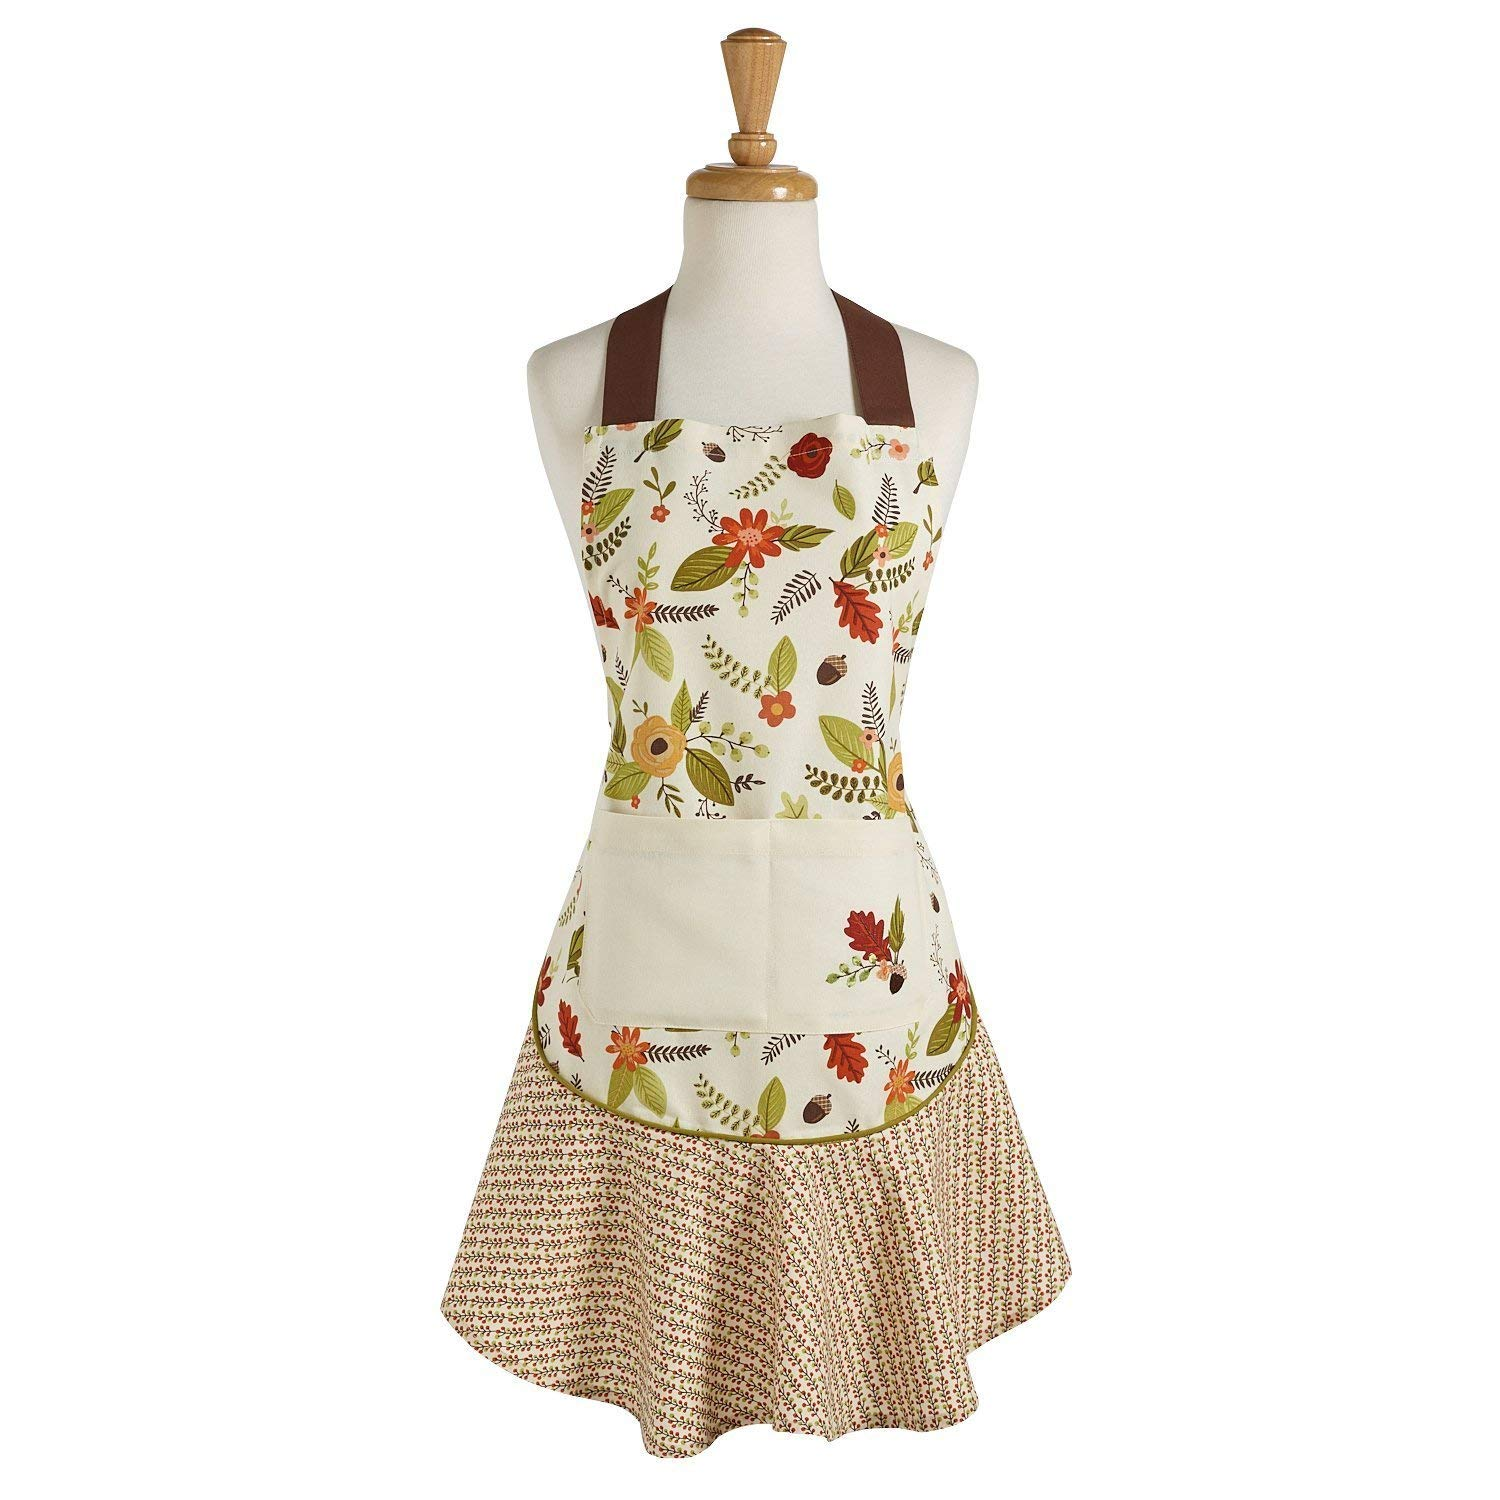 Design Imports DII Fall in Love Ruffle Apron - Autumn Leaves - Thanksgiving